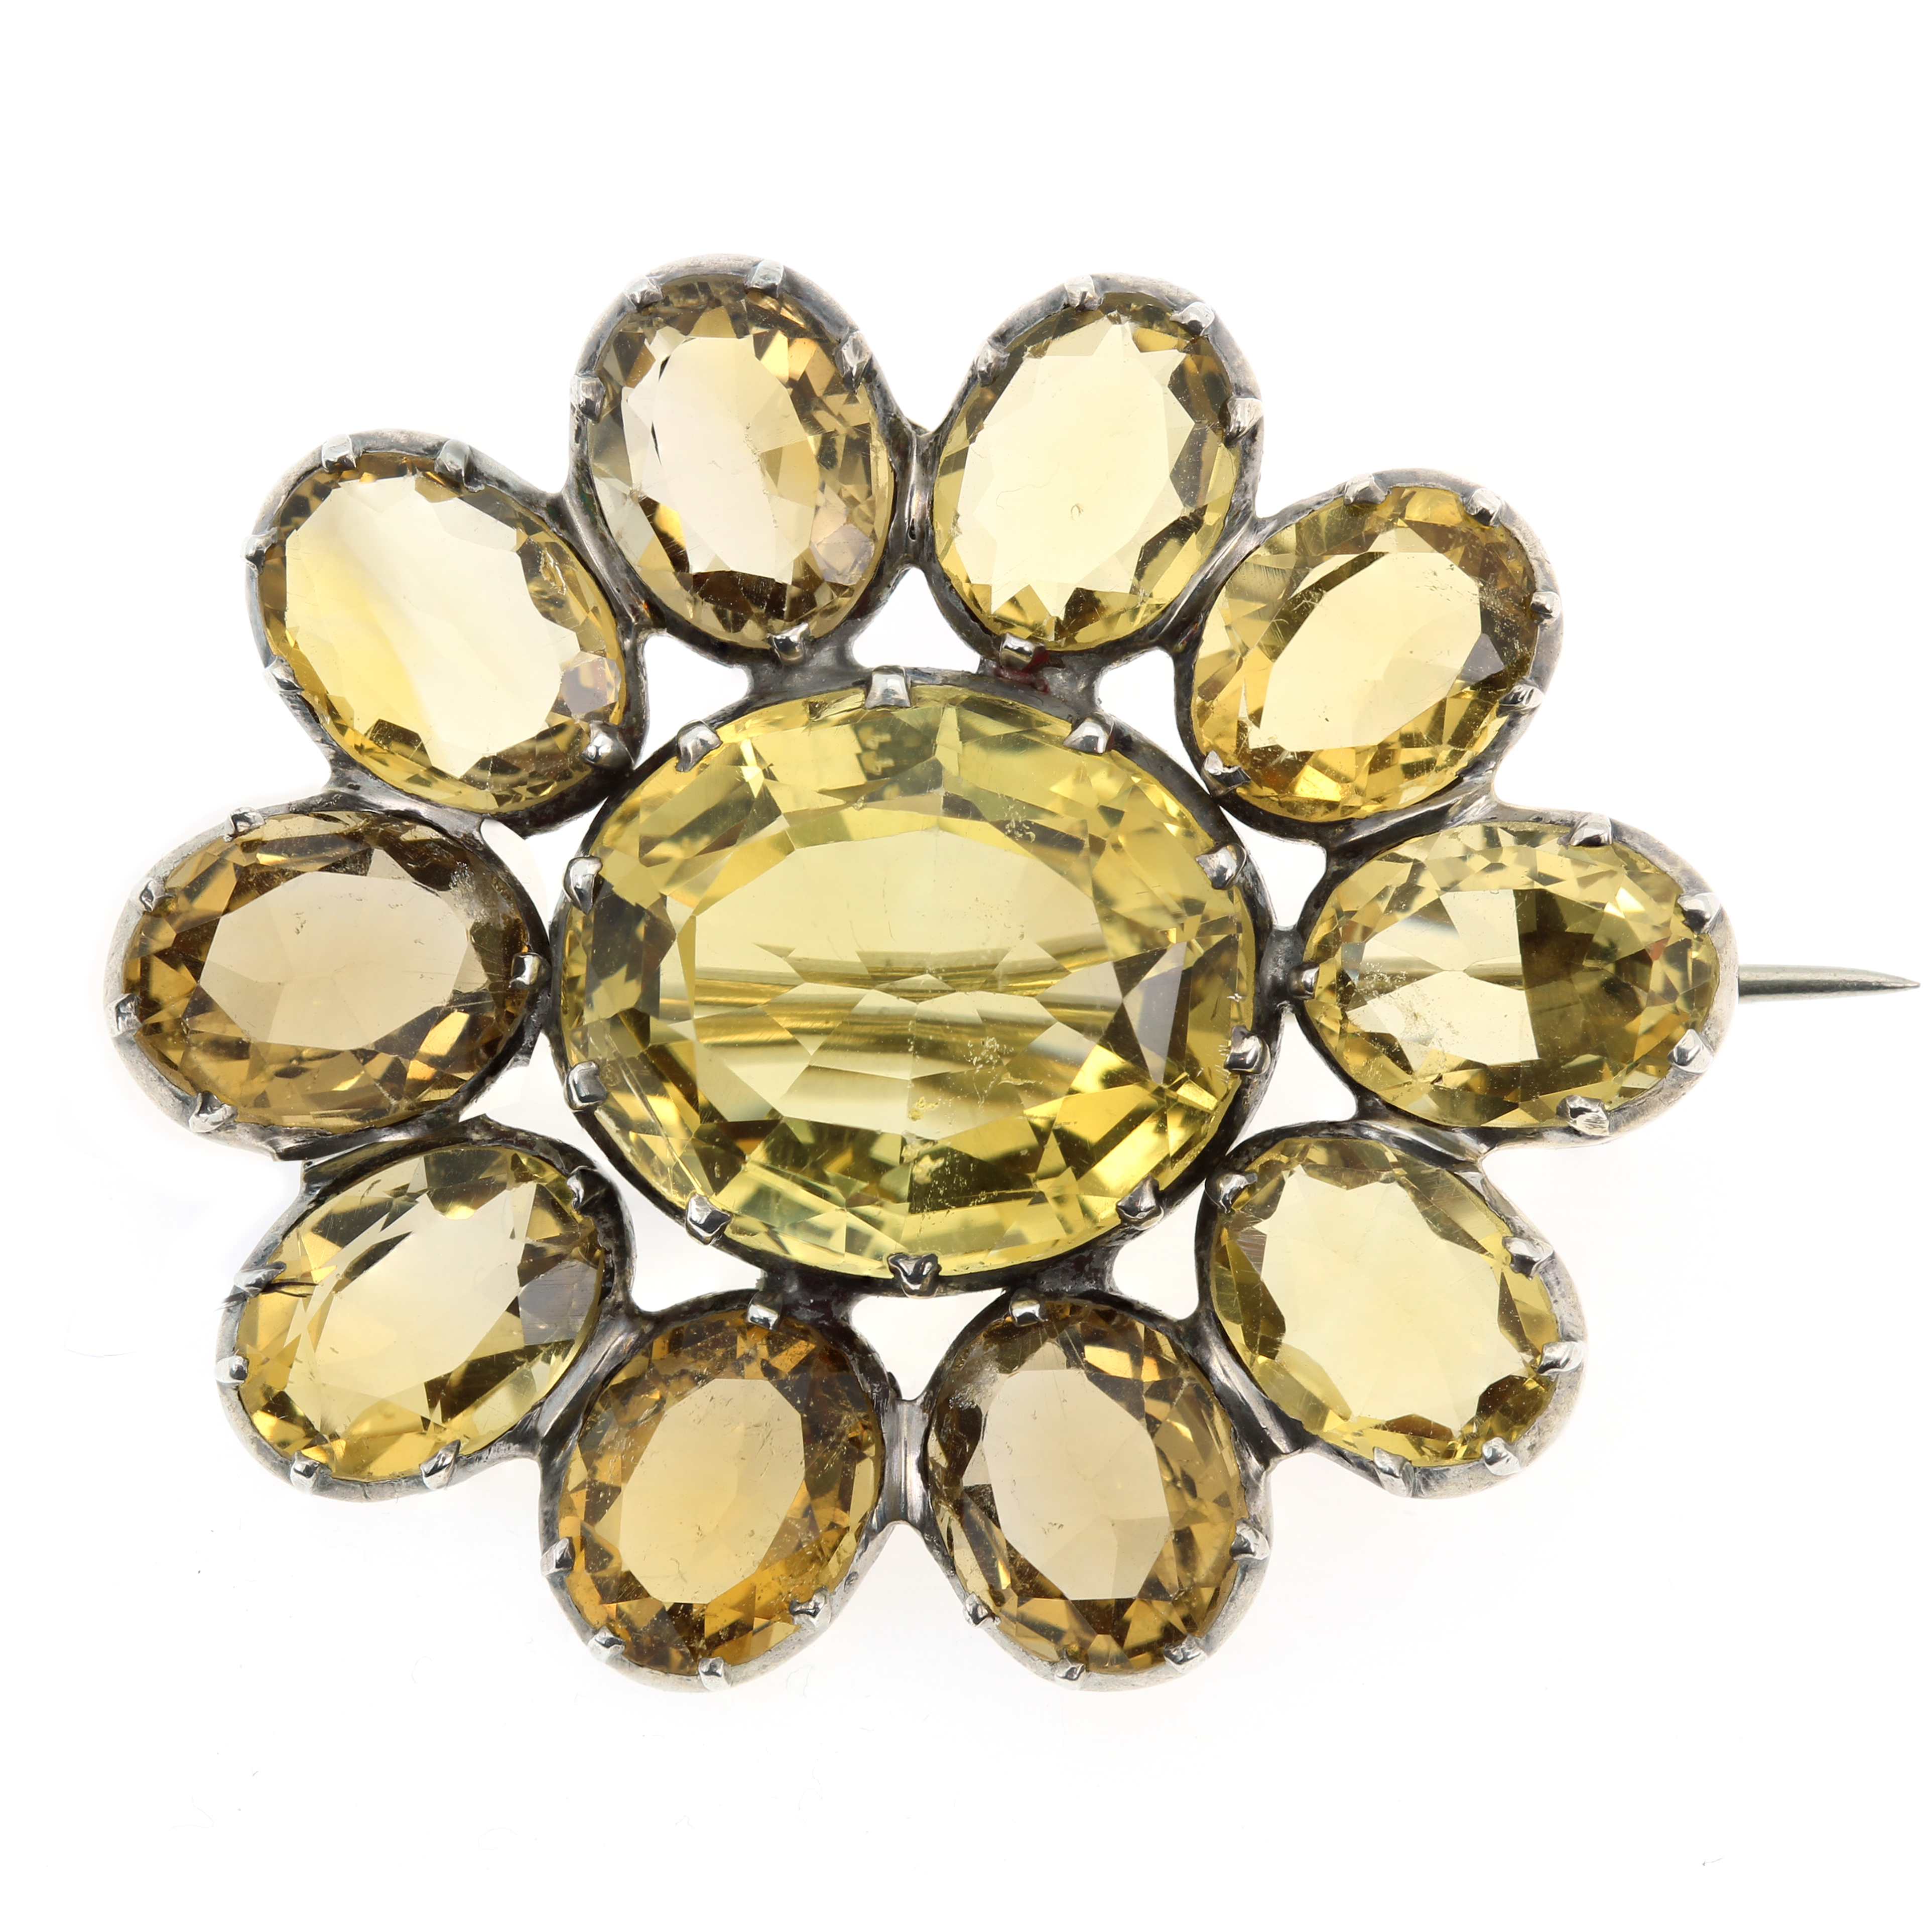 Los 33 - AN ANTIQUE CITRINE BROOCH, 19TH CENTURY in silver, set with a cluster of oval cut citrines,